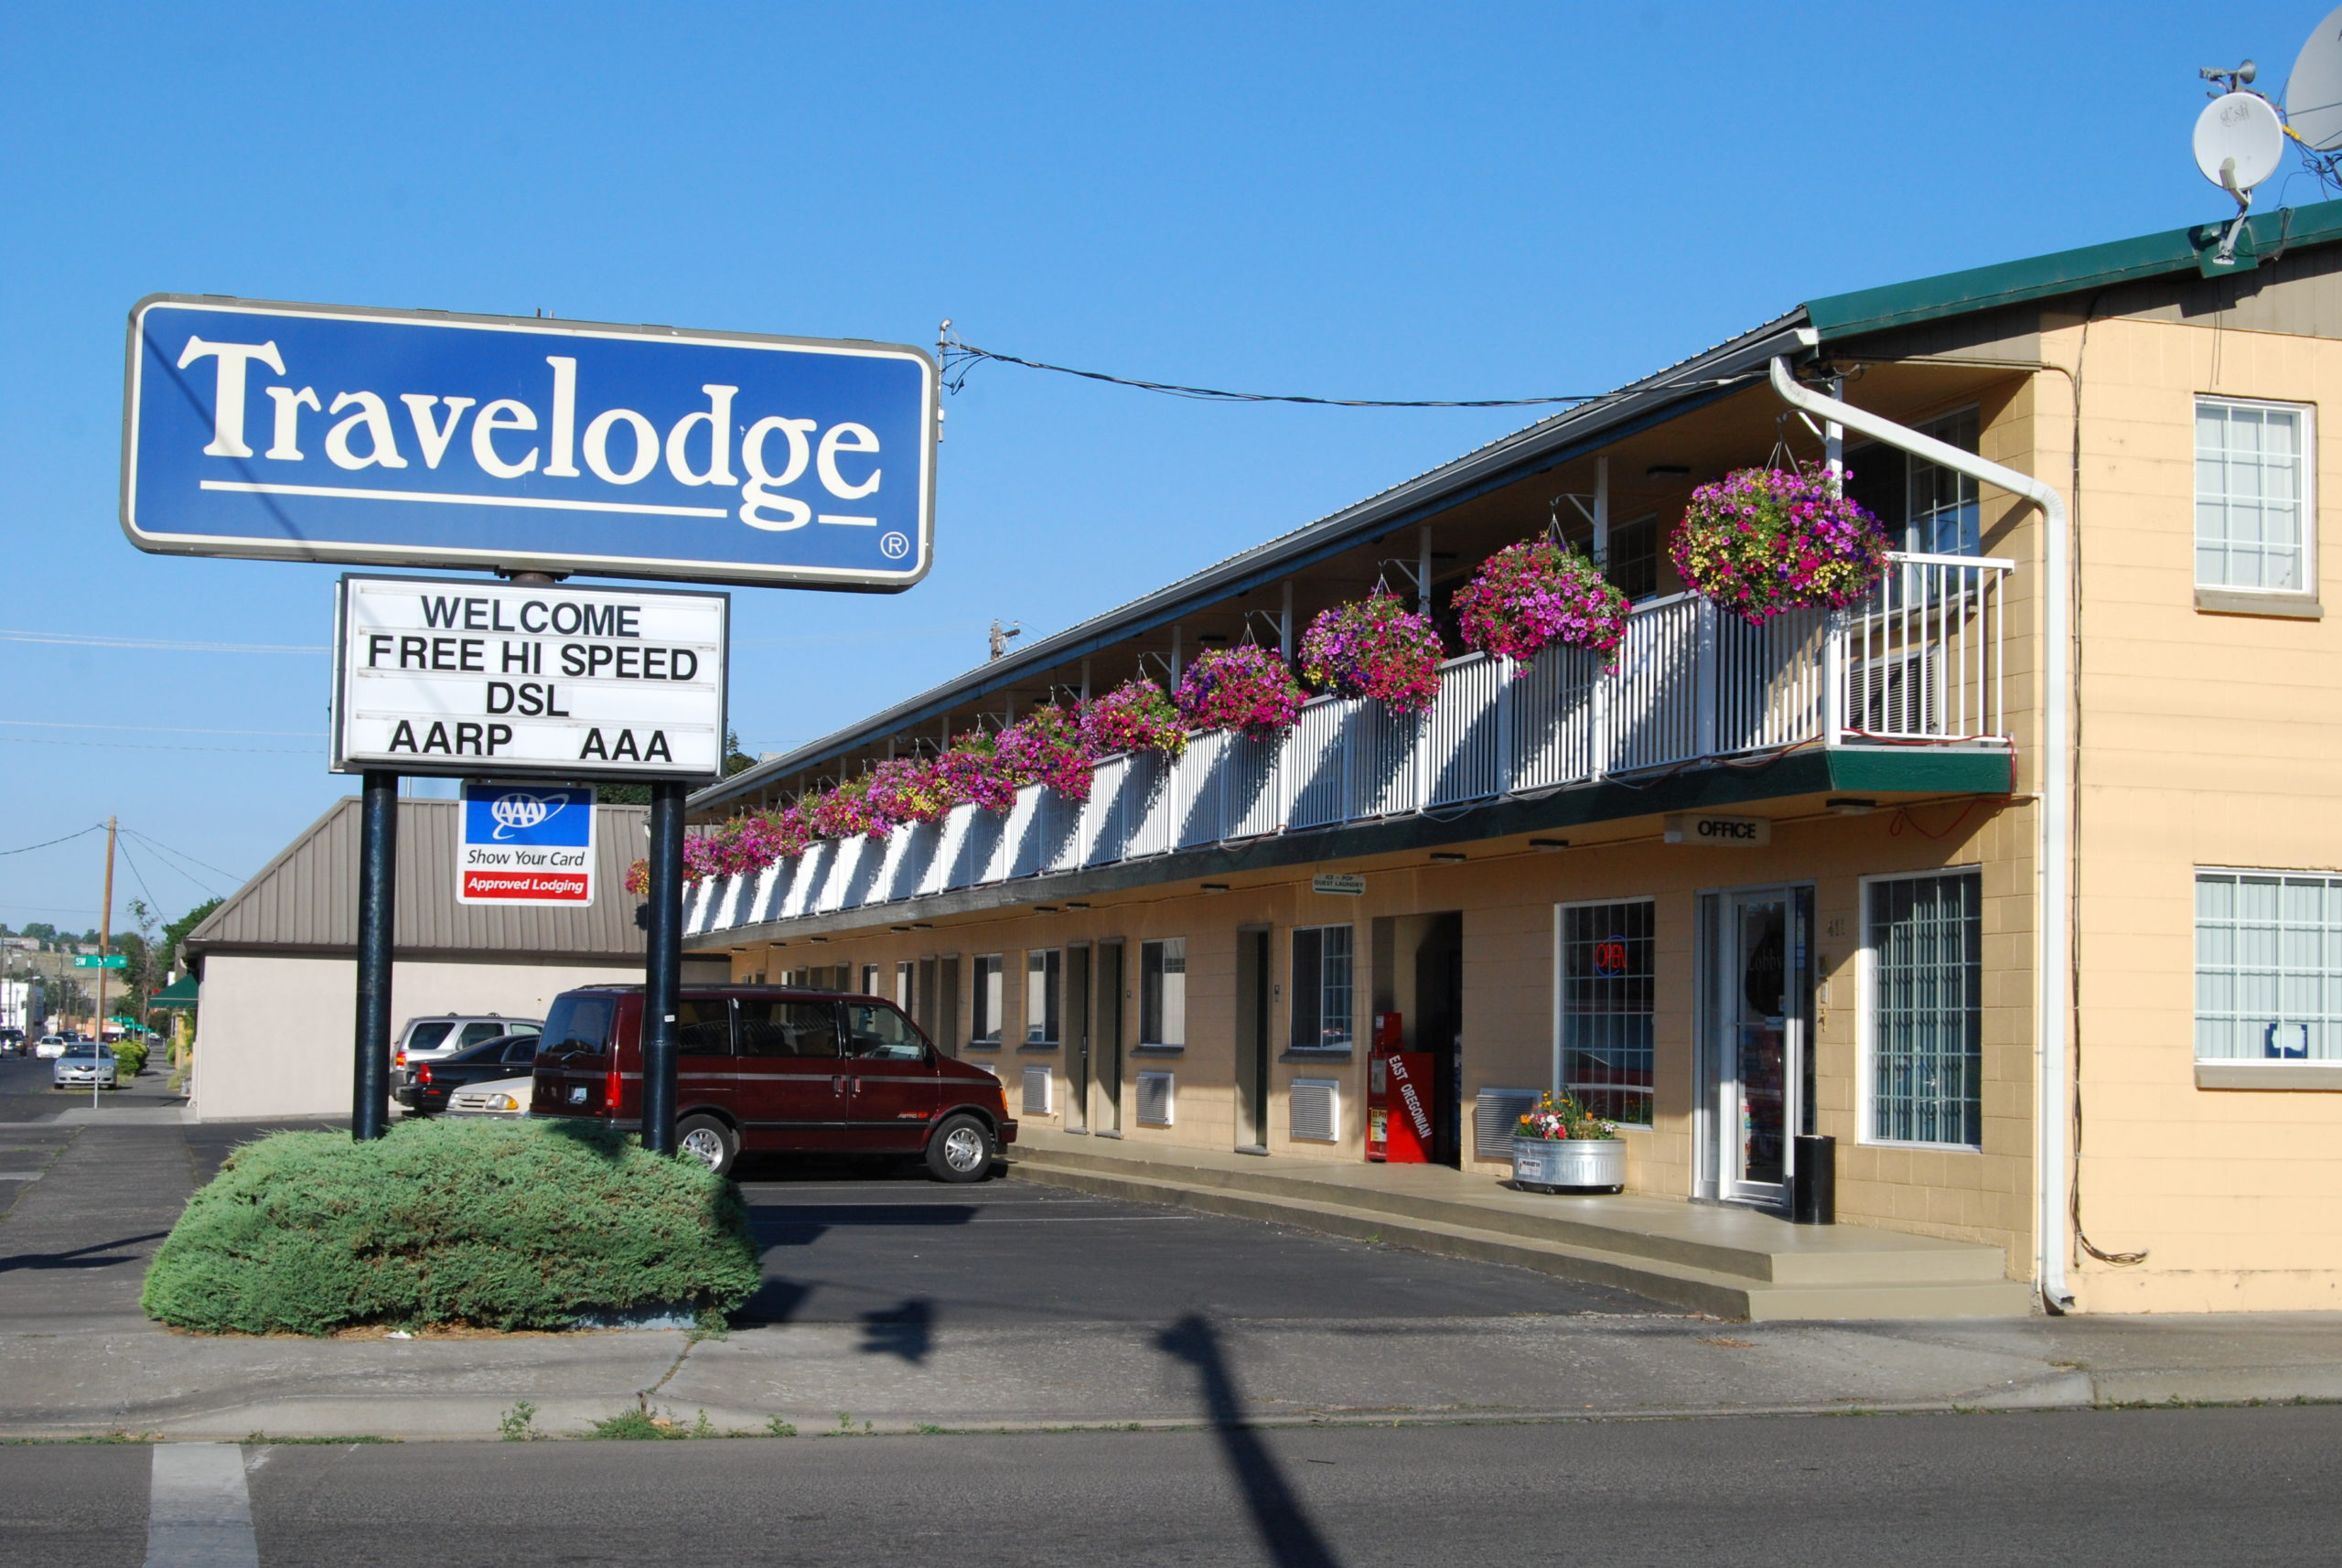 Travelodge (1)